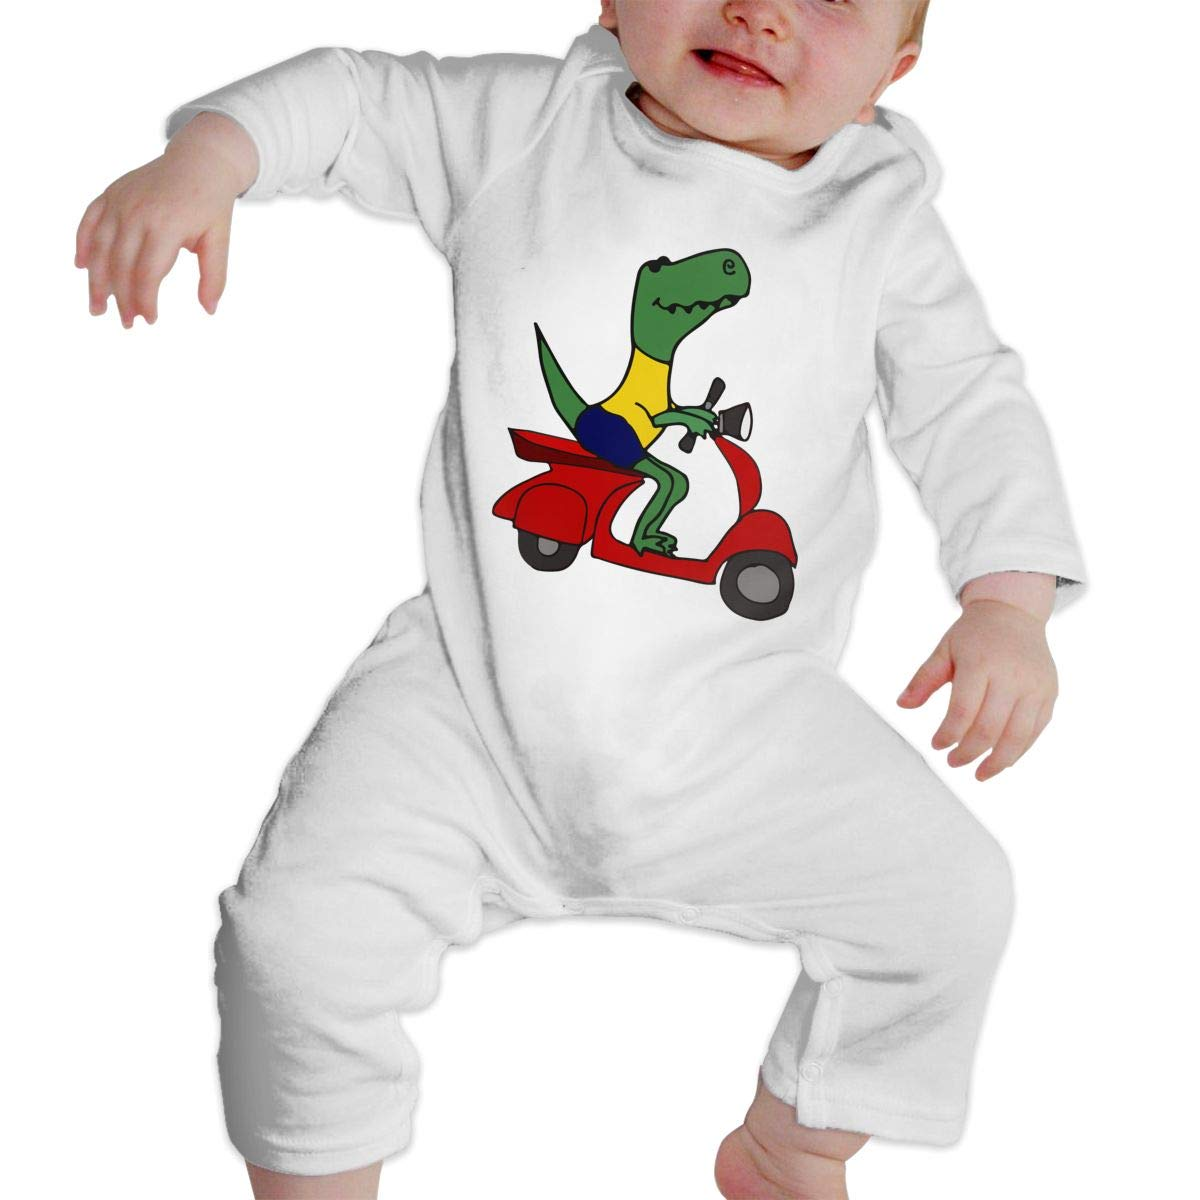 Baby Boy Long Sleeved Coveralls T-Rex Dinosaur Riding Motor Scooter Toddler Jumpsuit